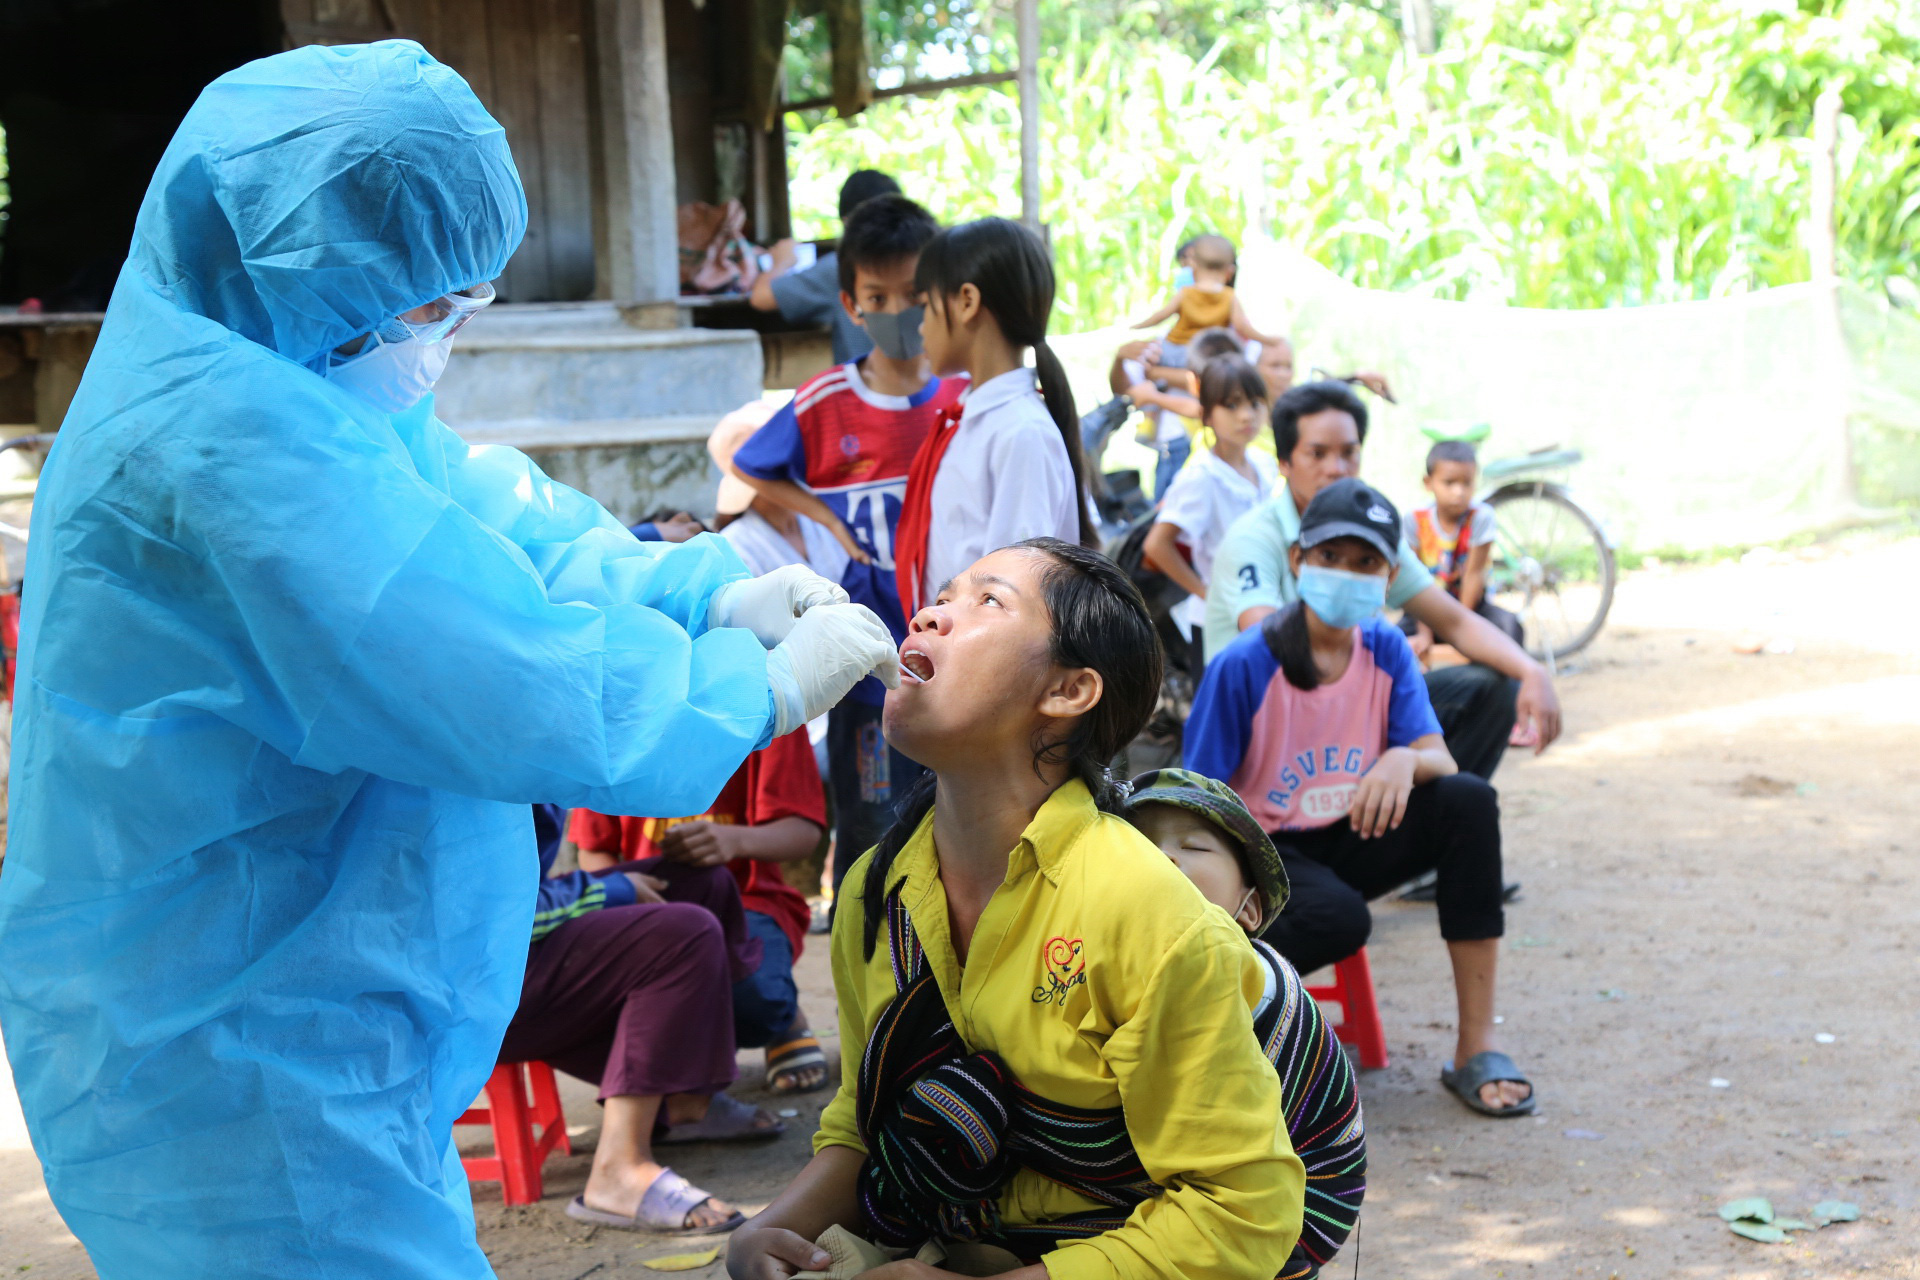 Anti-vaxxers a roadblock in fight to control Vietnam's diphtheria outbreak